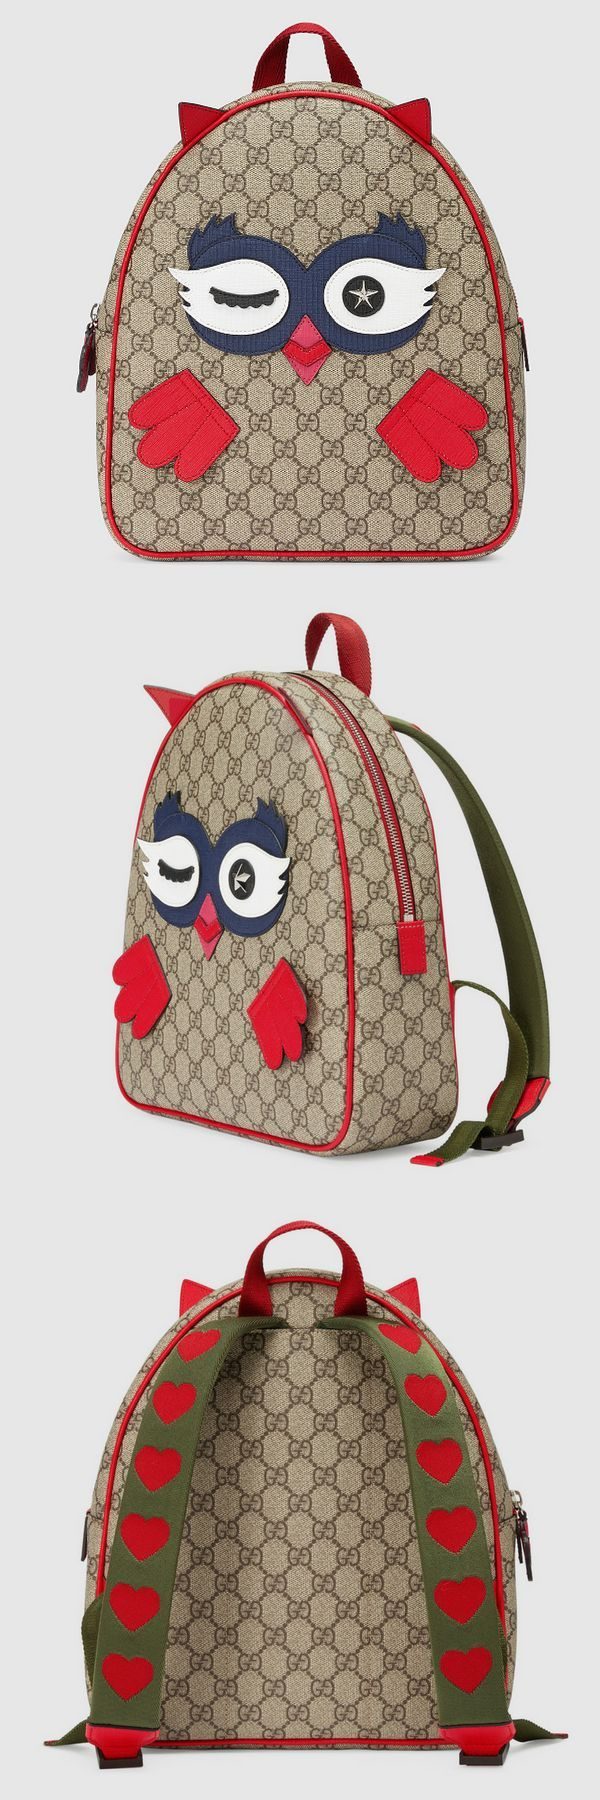 Children's owl #backpack Beige/ebony GG Supreme canvas, a material with low environmental impact with Supreme canvas owl details Adjustable nylon shoulder straps with heart details. Kid's #bag